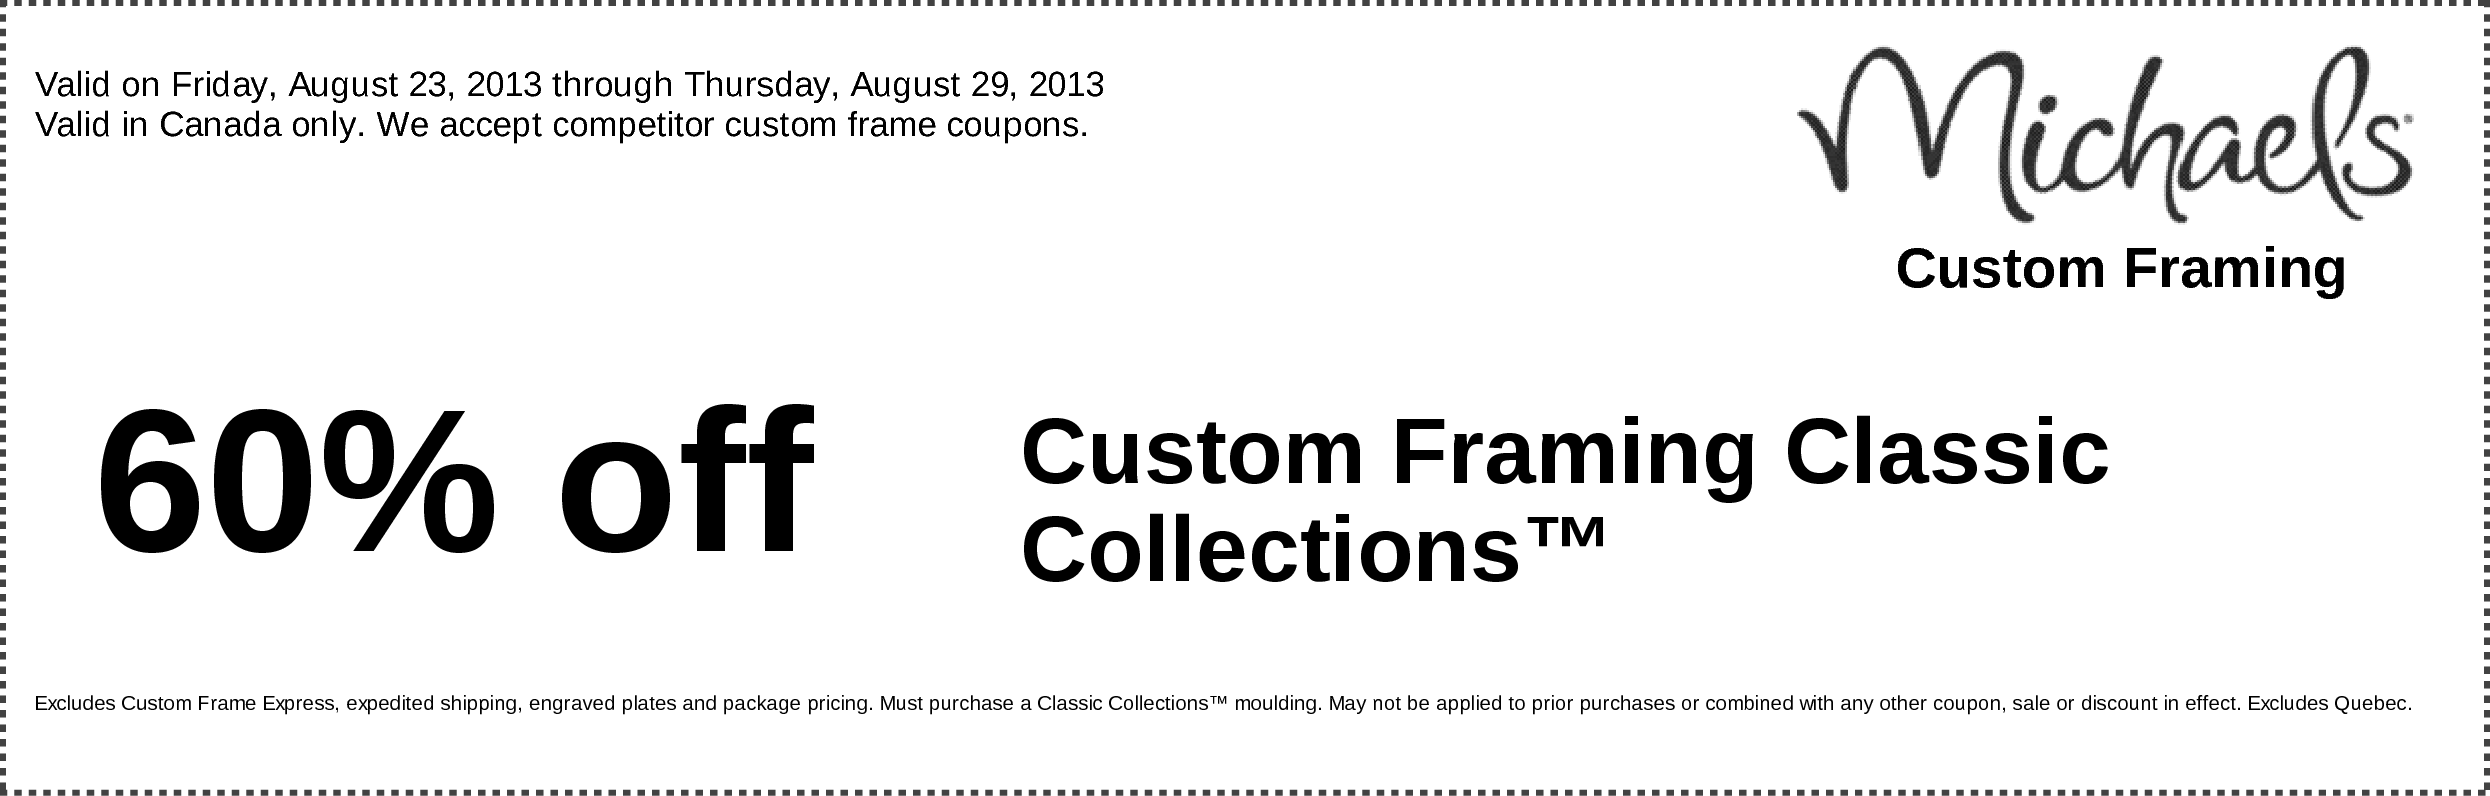 save 60 off custom framing classic collections